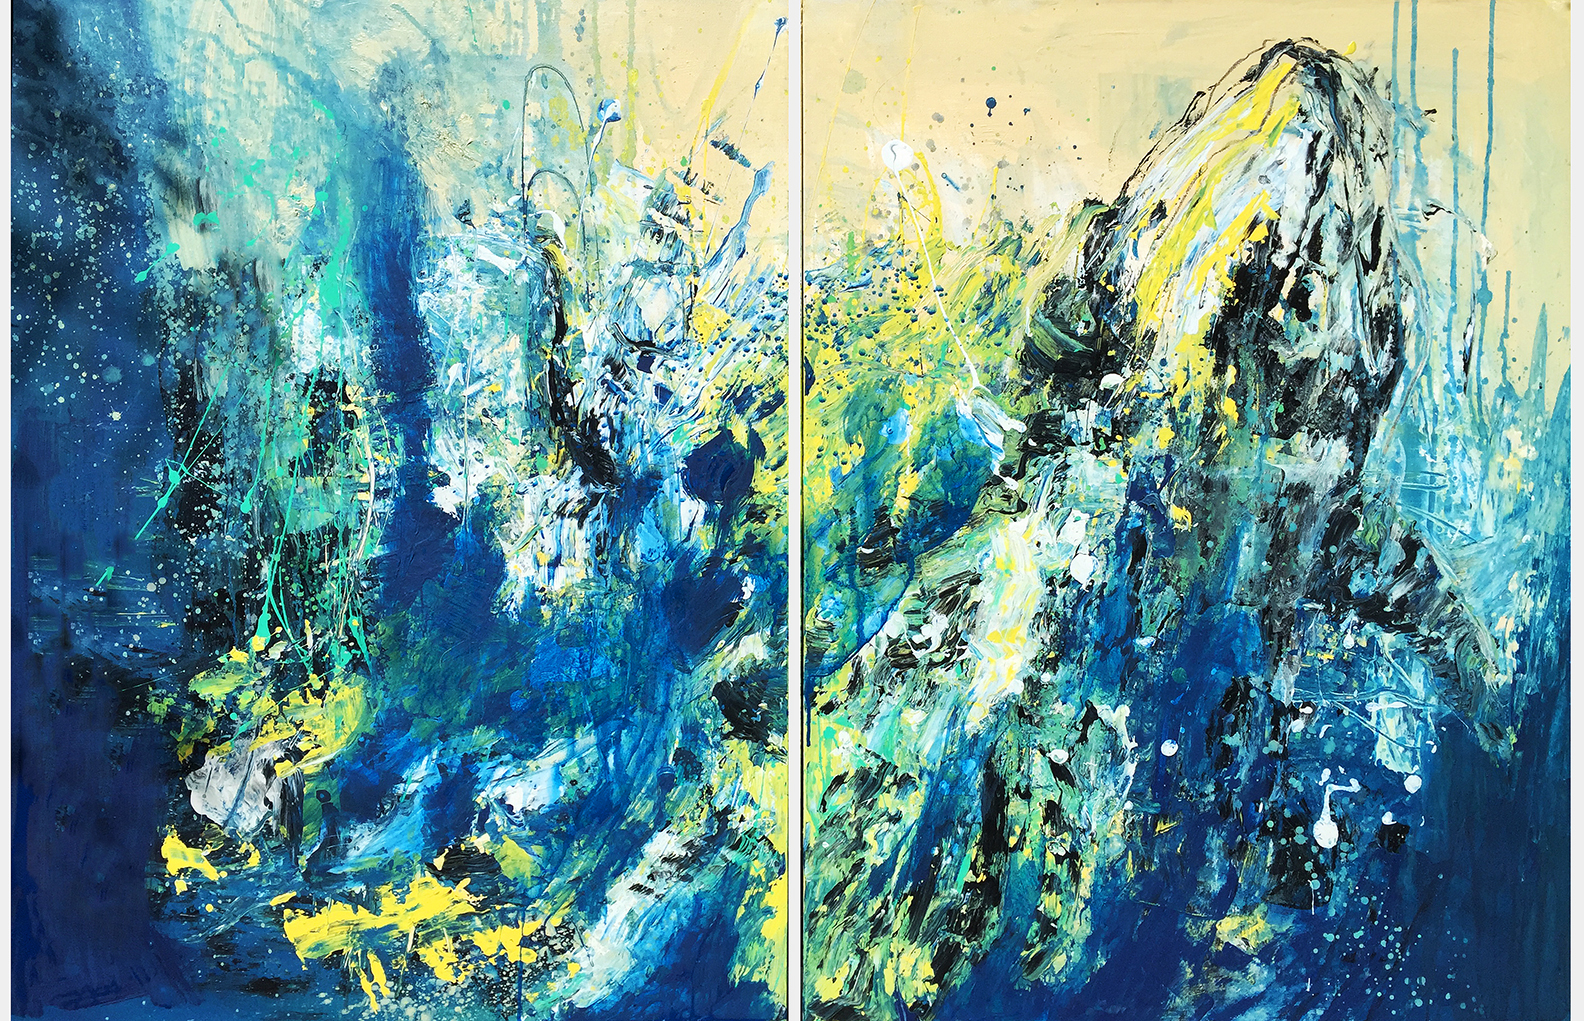 Breaching Consciousness - Available for Purchase - Info@annmcferran.com